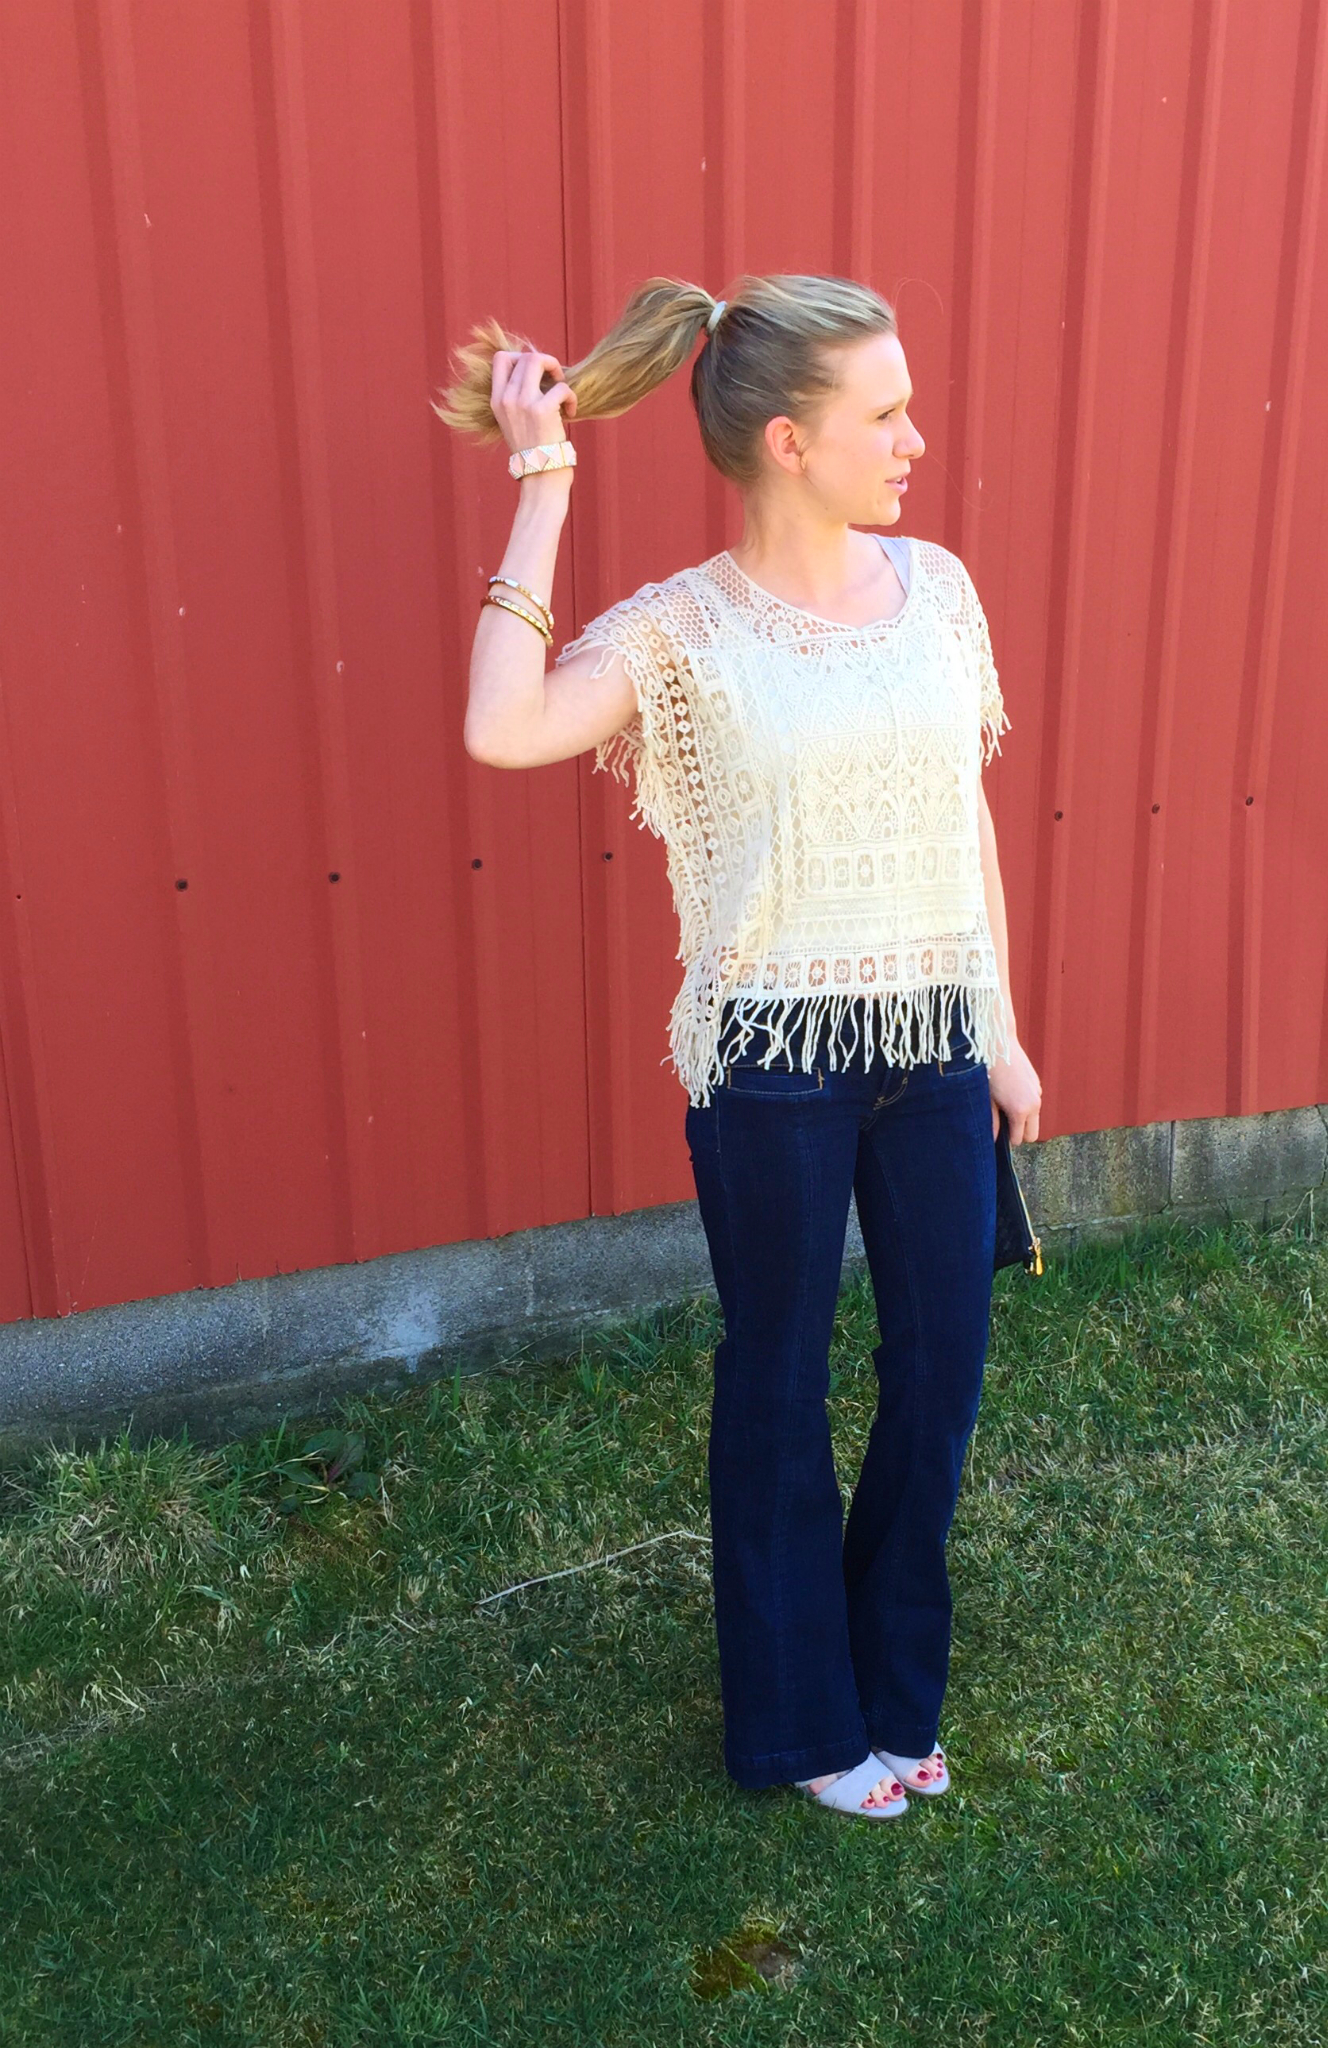 Bell bottoms & fringe shirt